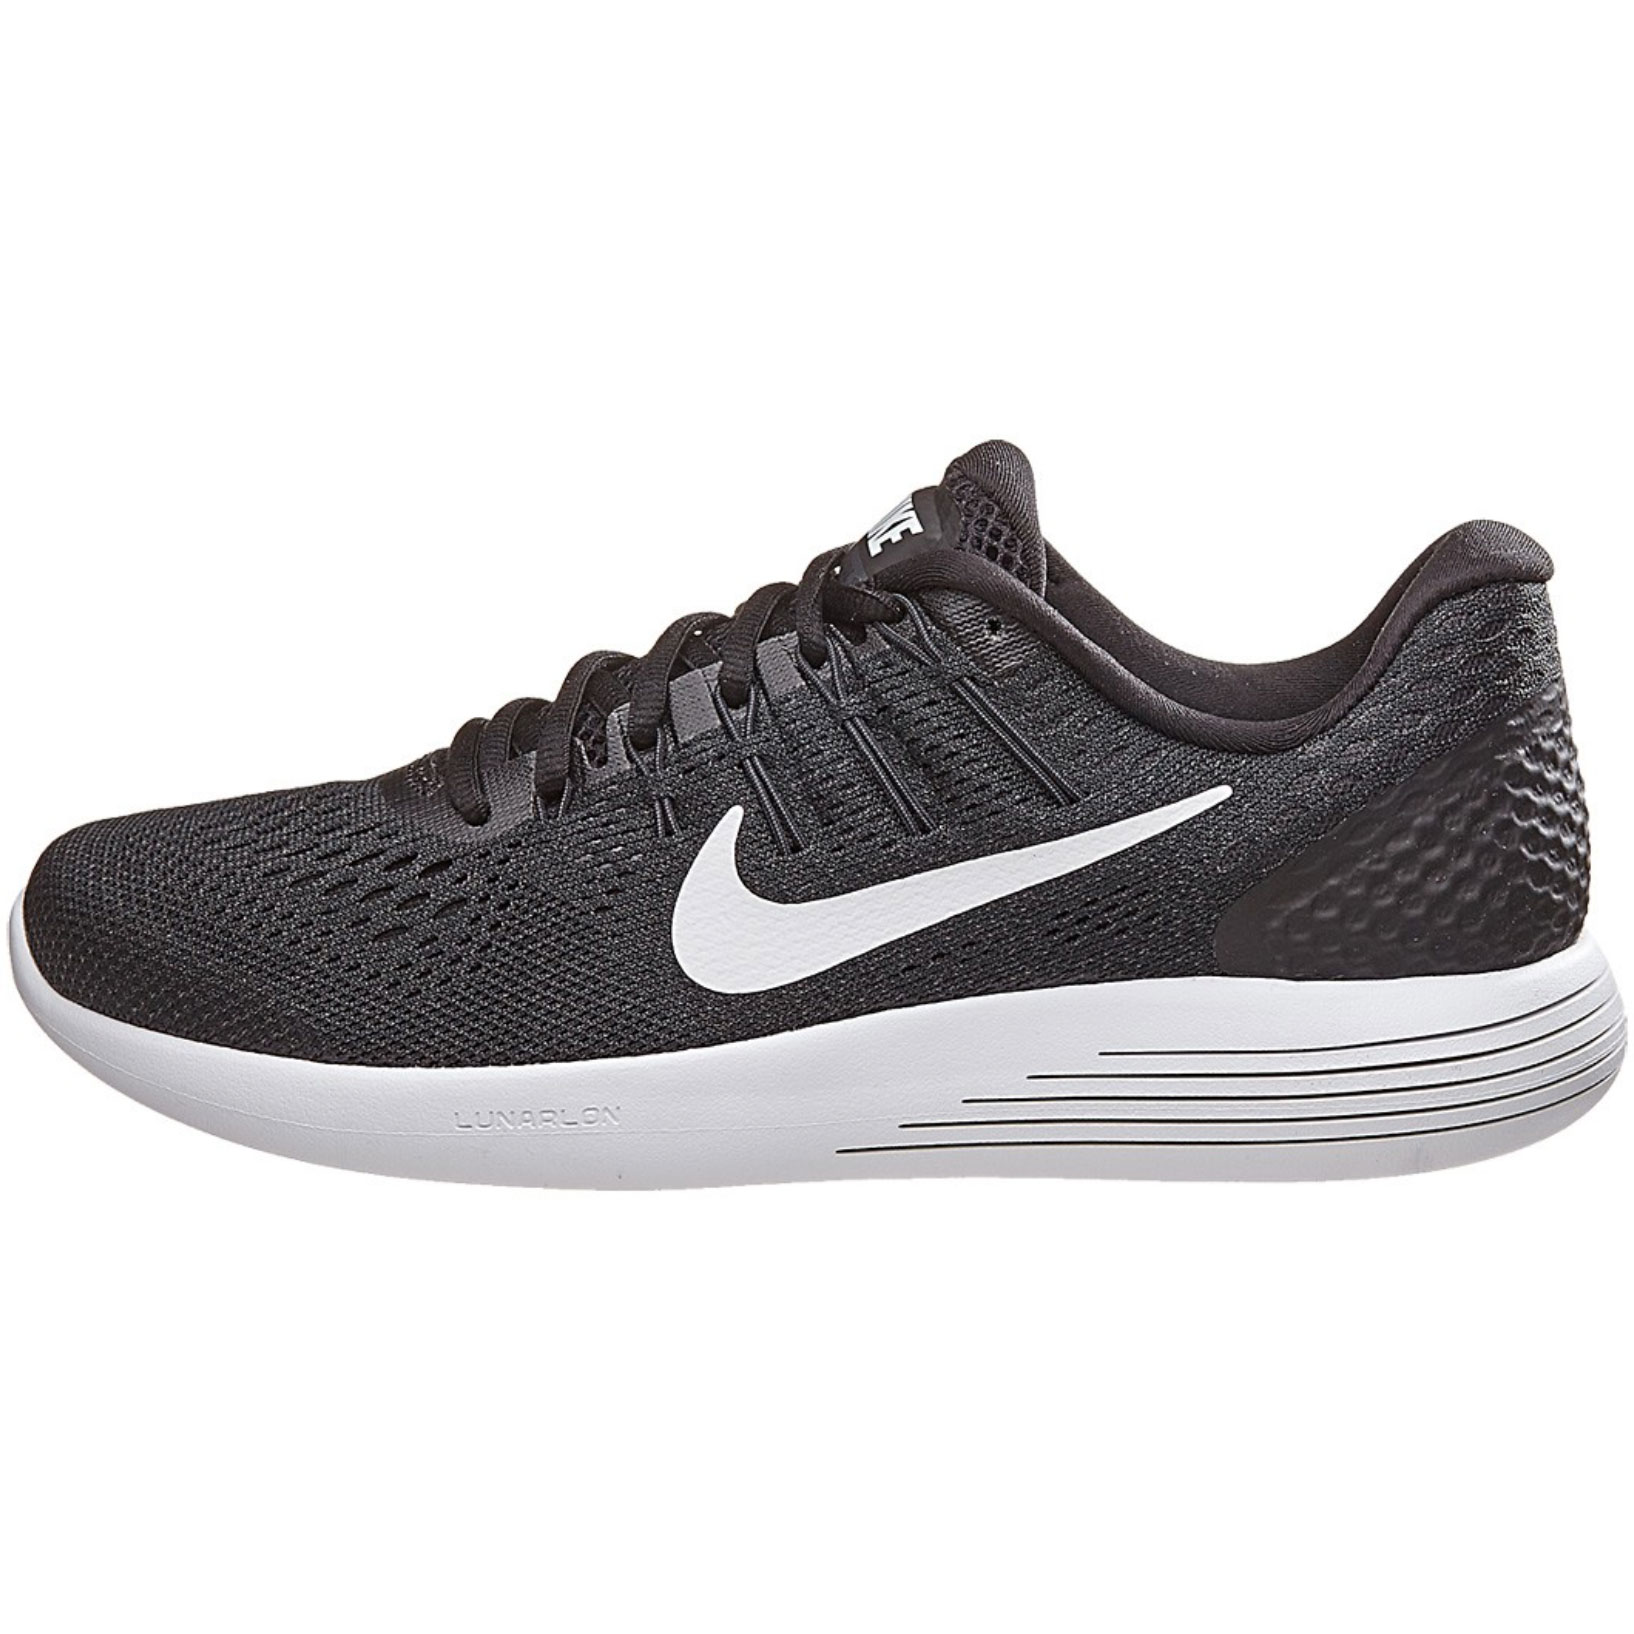 Nike Lunarglide 8 supposed to be good for overpronation